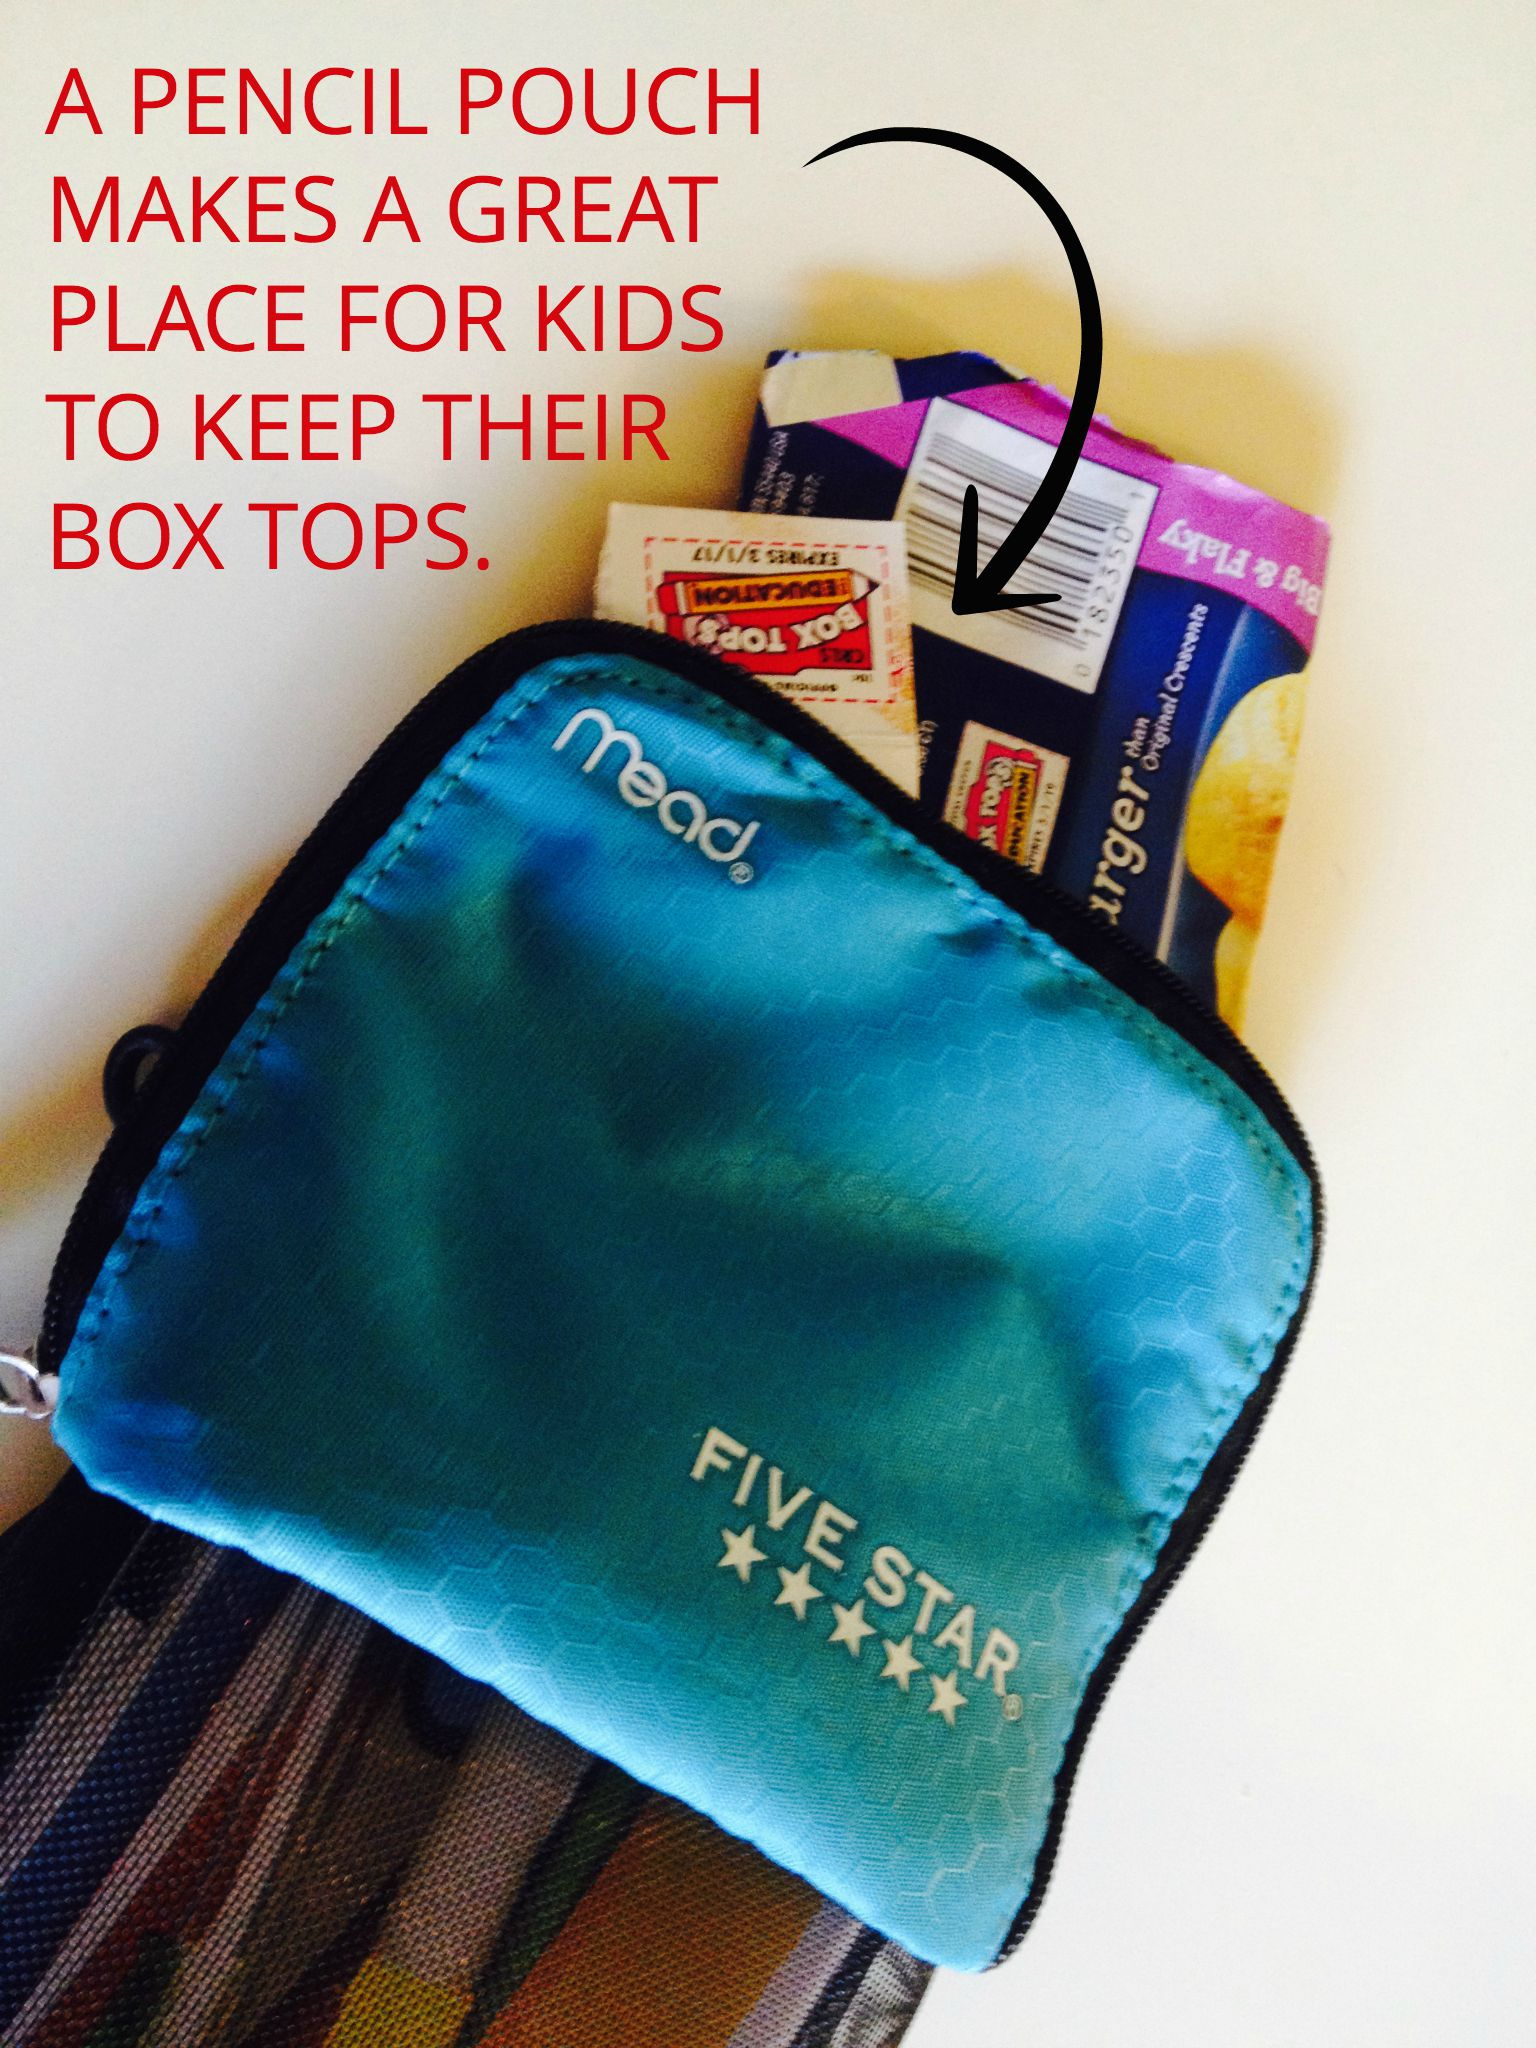 Make collecting and clipping Box Tops your kids' responsibility, so they can be part of a larger effort to support their school. Hint: A pencil pouch is a great way to keep Box Tops until it's time to hand them in.